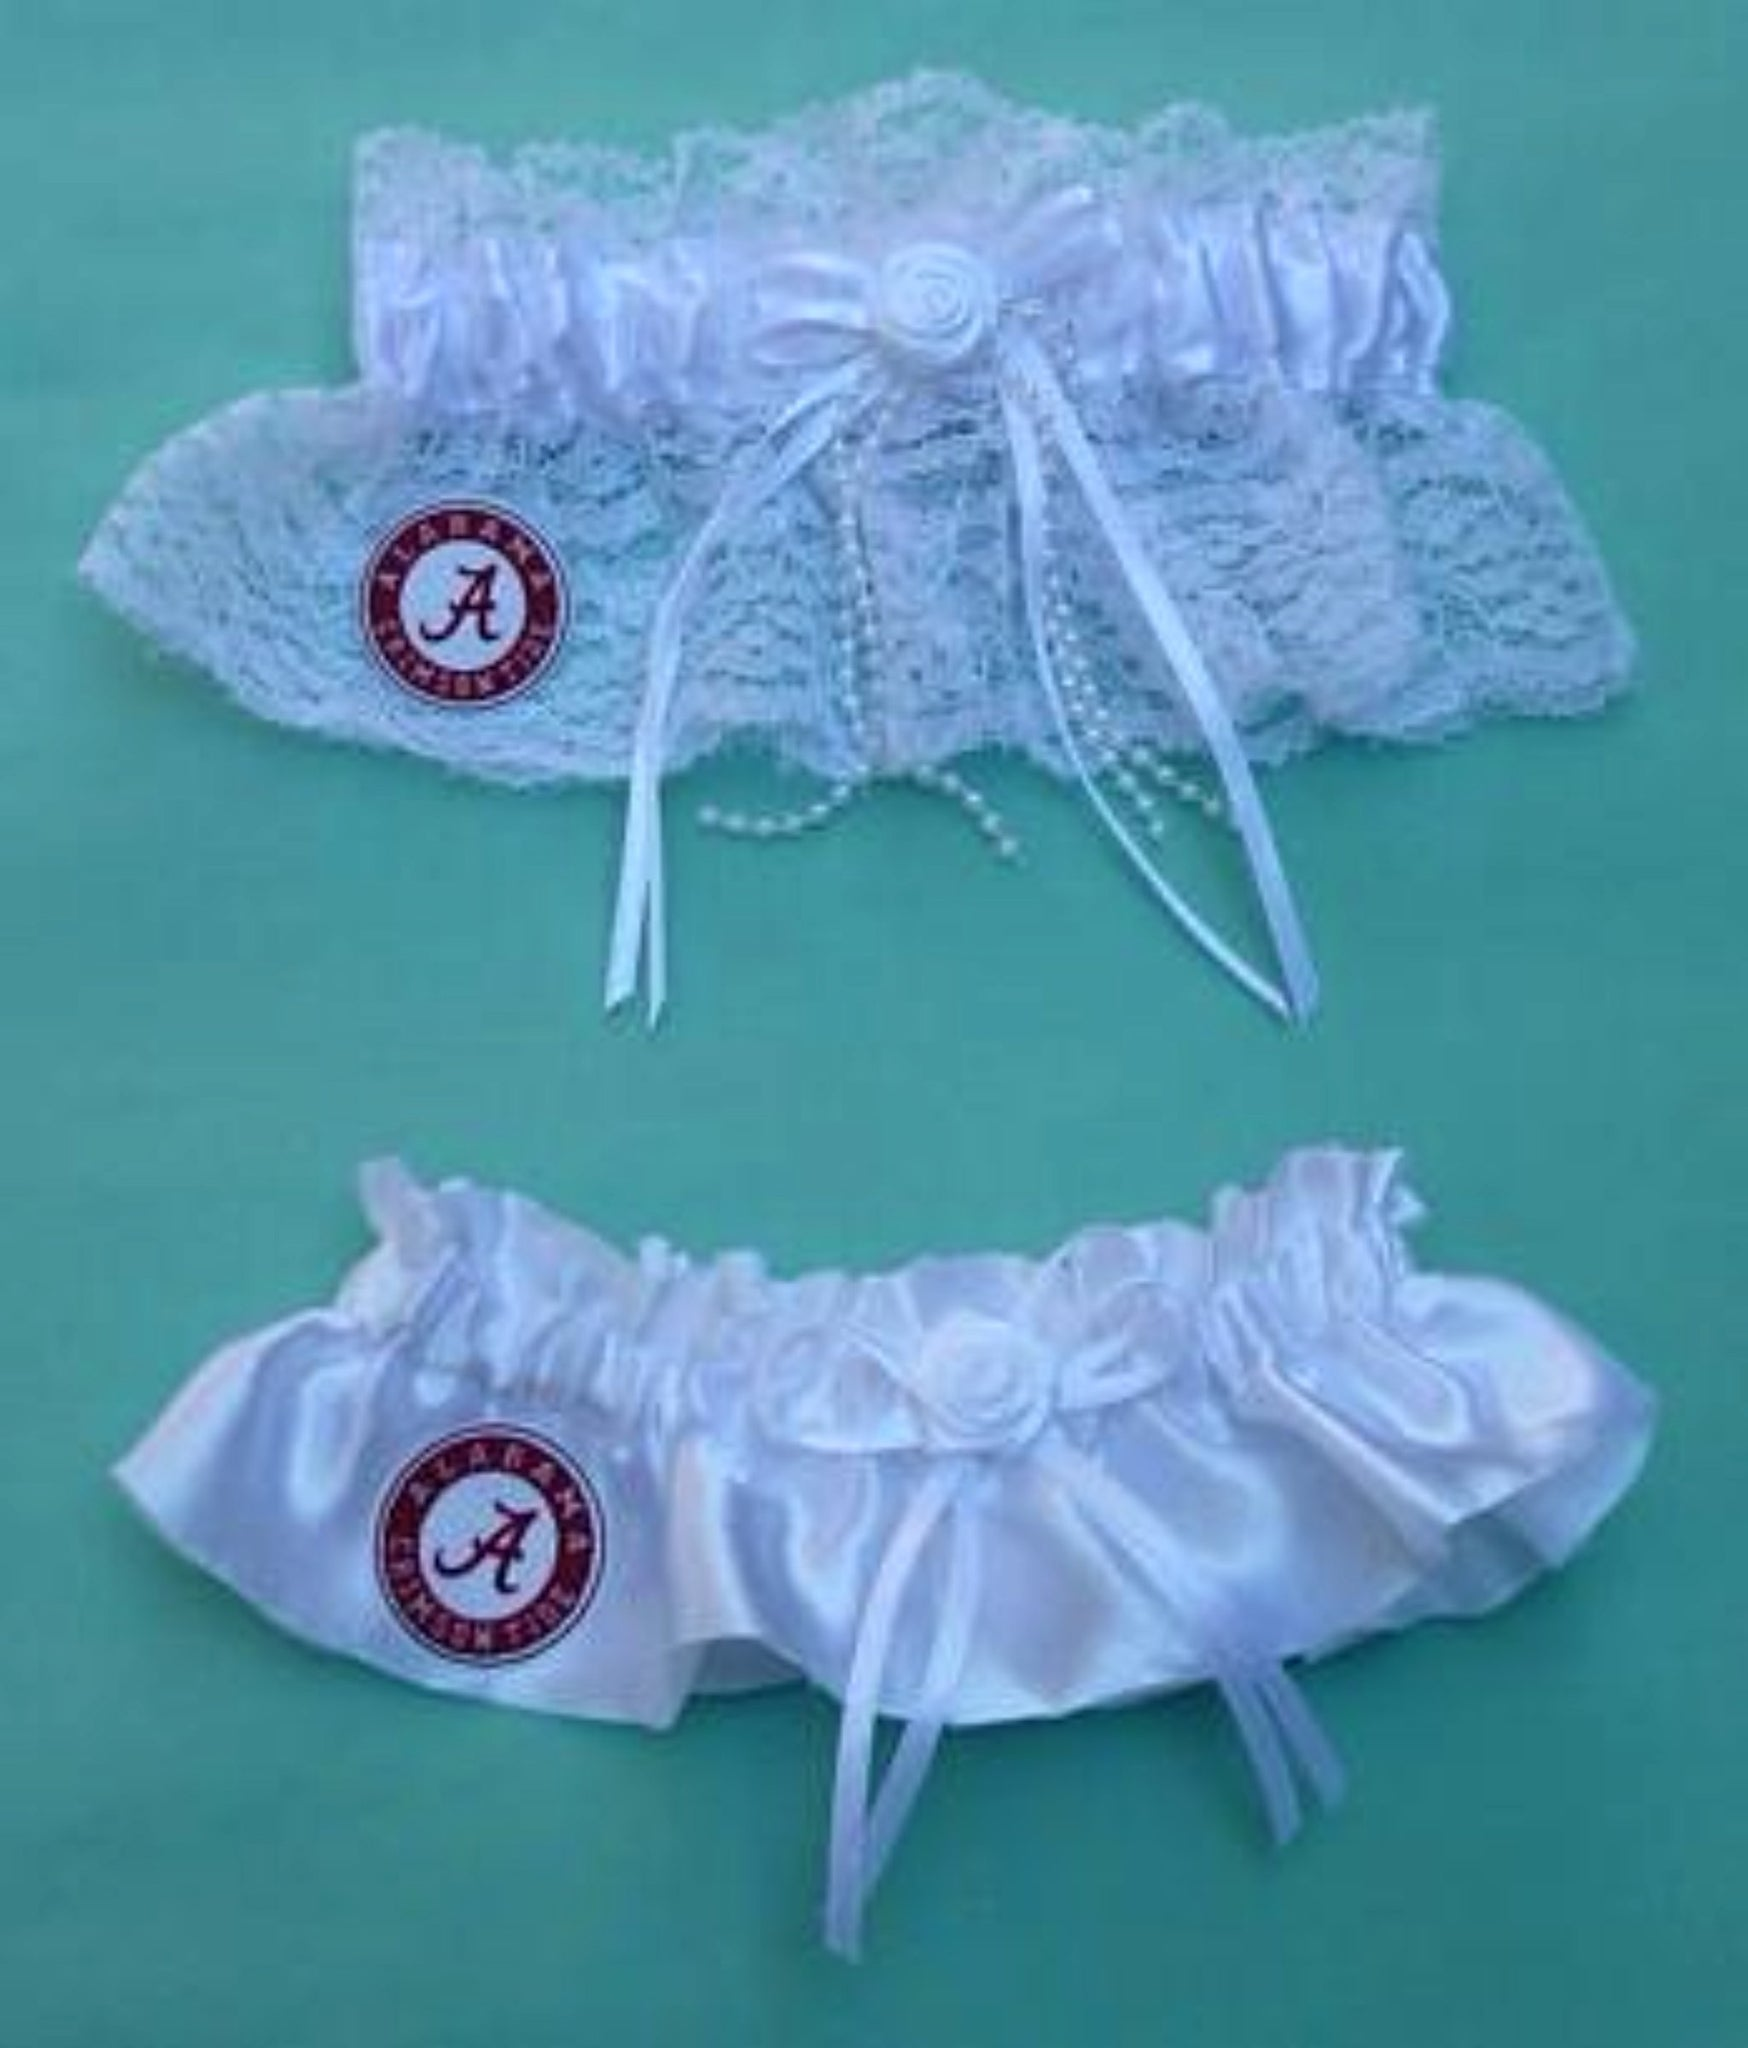 University of Alabama Crimson Tide wedding garter set bridal garters white lace satin ivory toss keepsake reception fans Fun Wedding Things